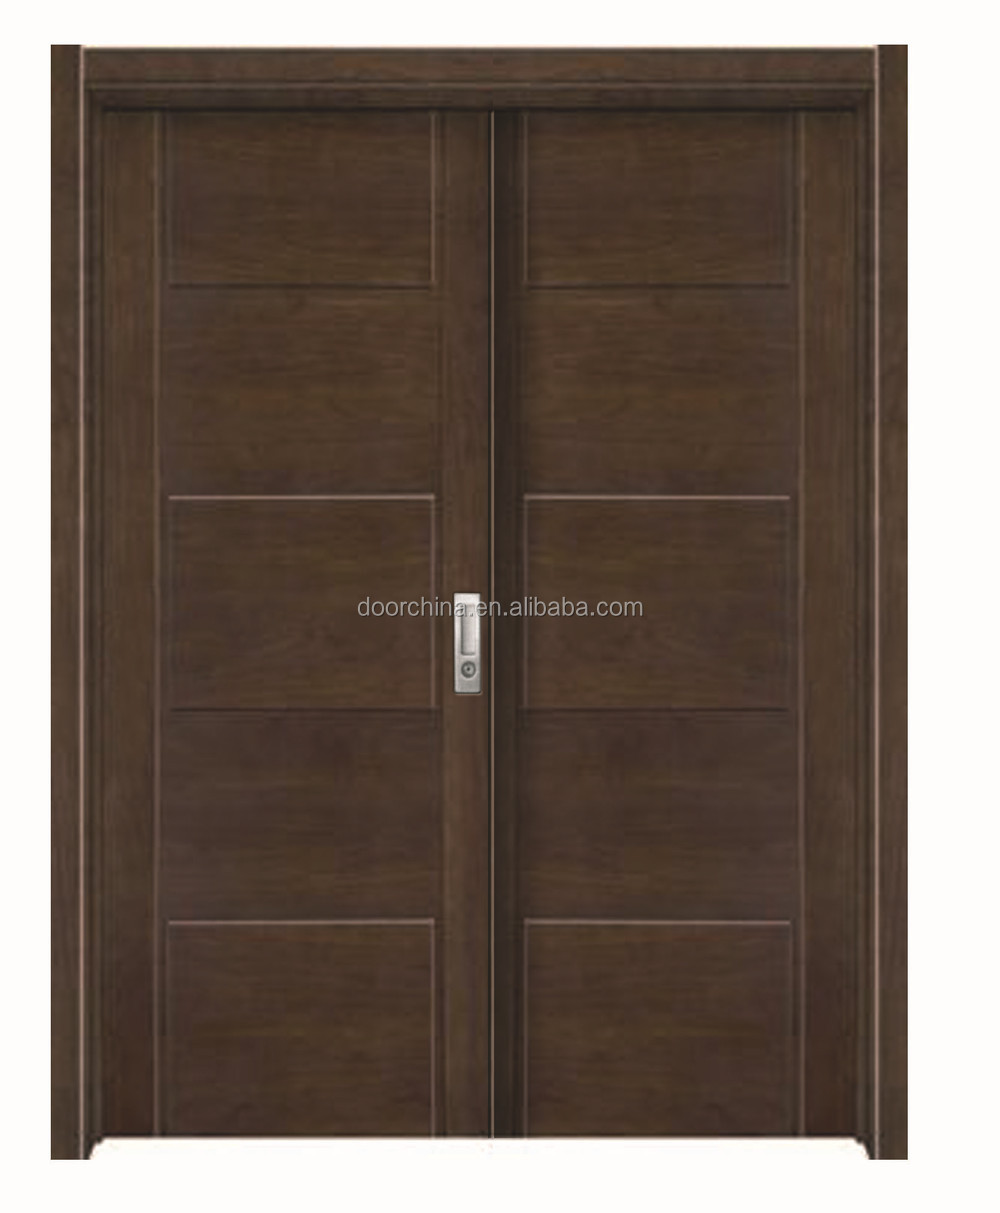 Pvc indian style wooden main door designs double door for French main door designs